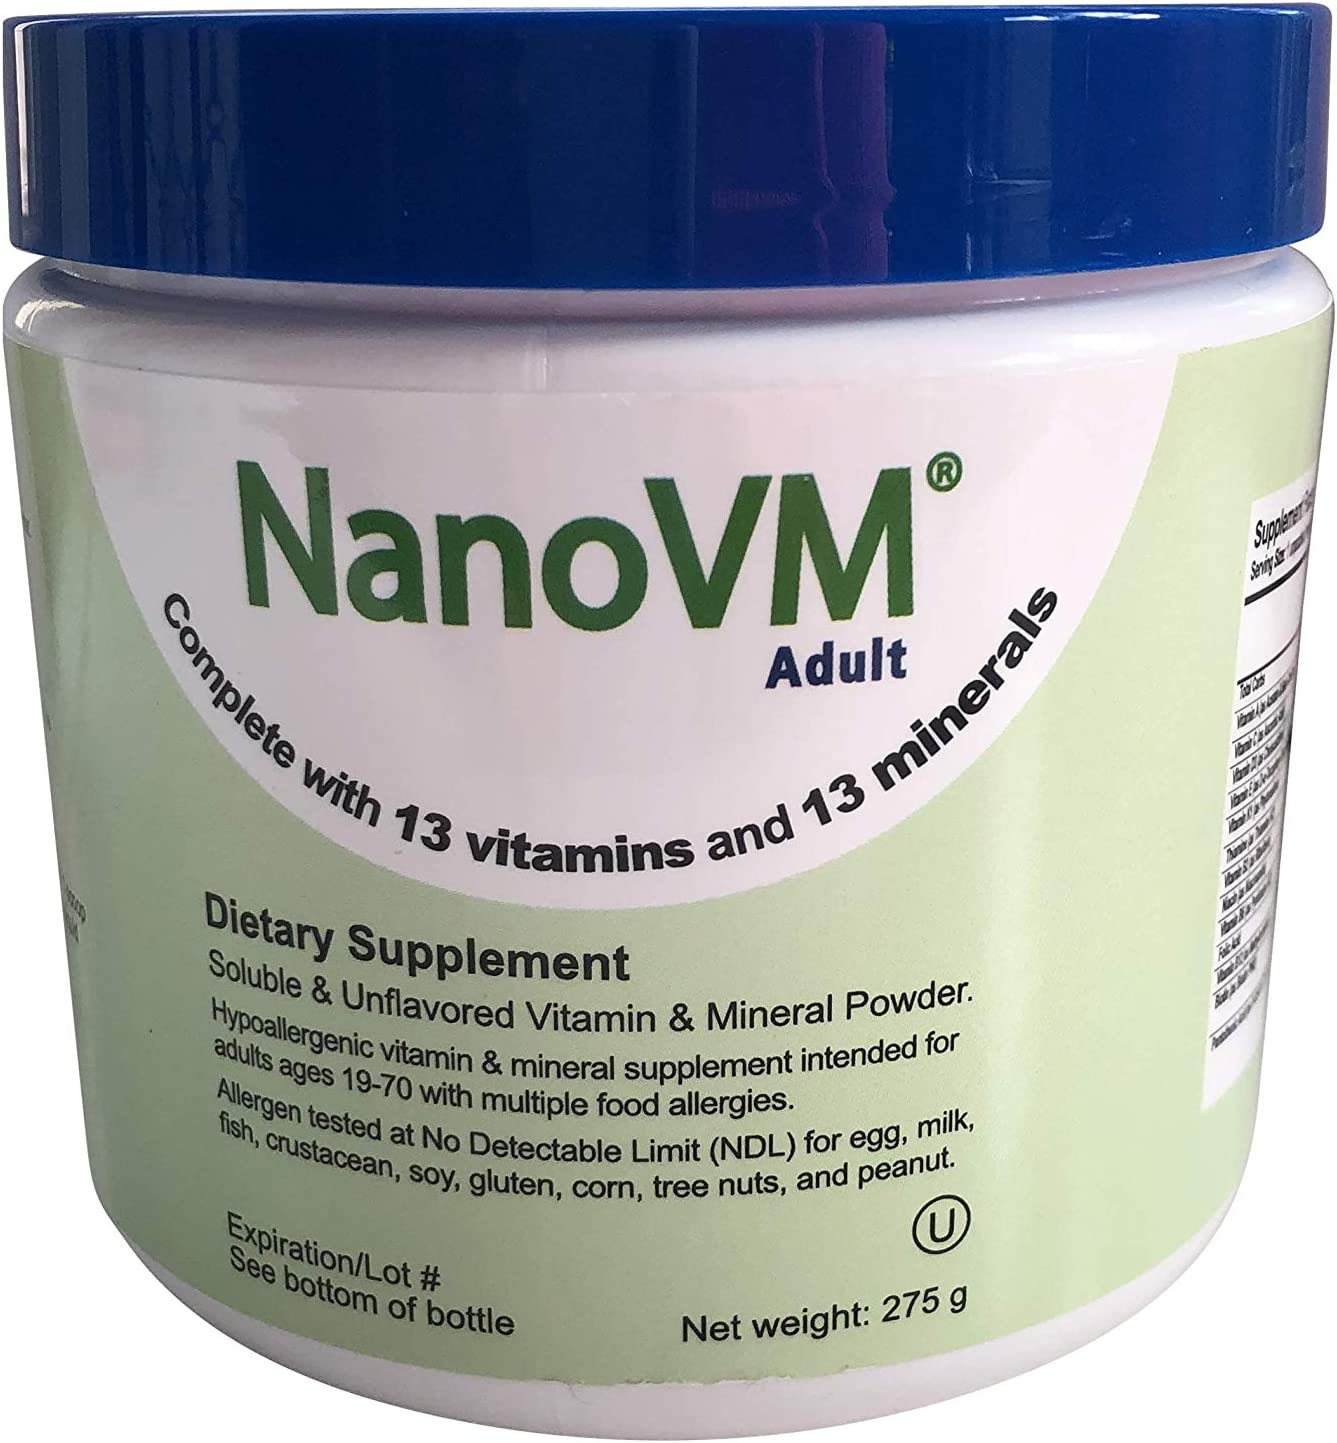 Solace Nutrition NanoVM Adult Diet Supplement, 275g Mineral Supplement Designed for Seniors with Multiple Food Allergies.